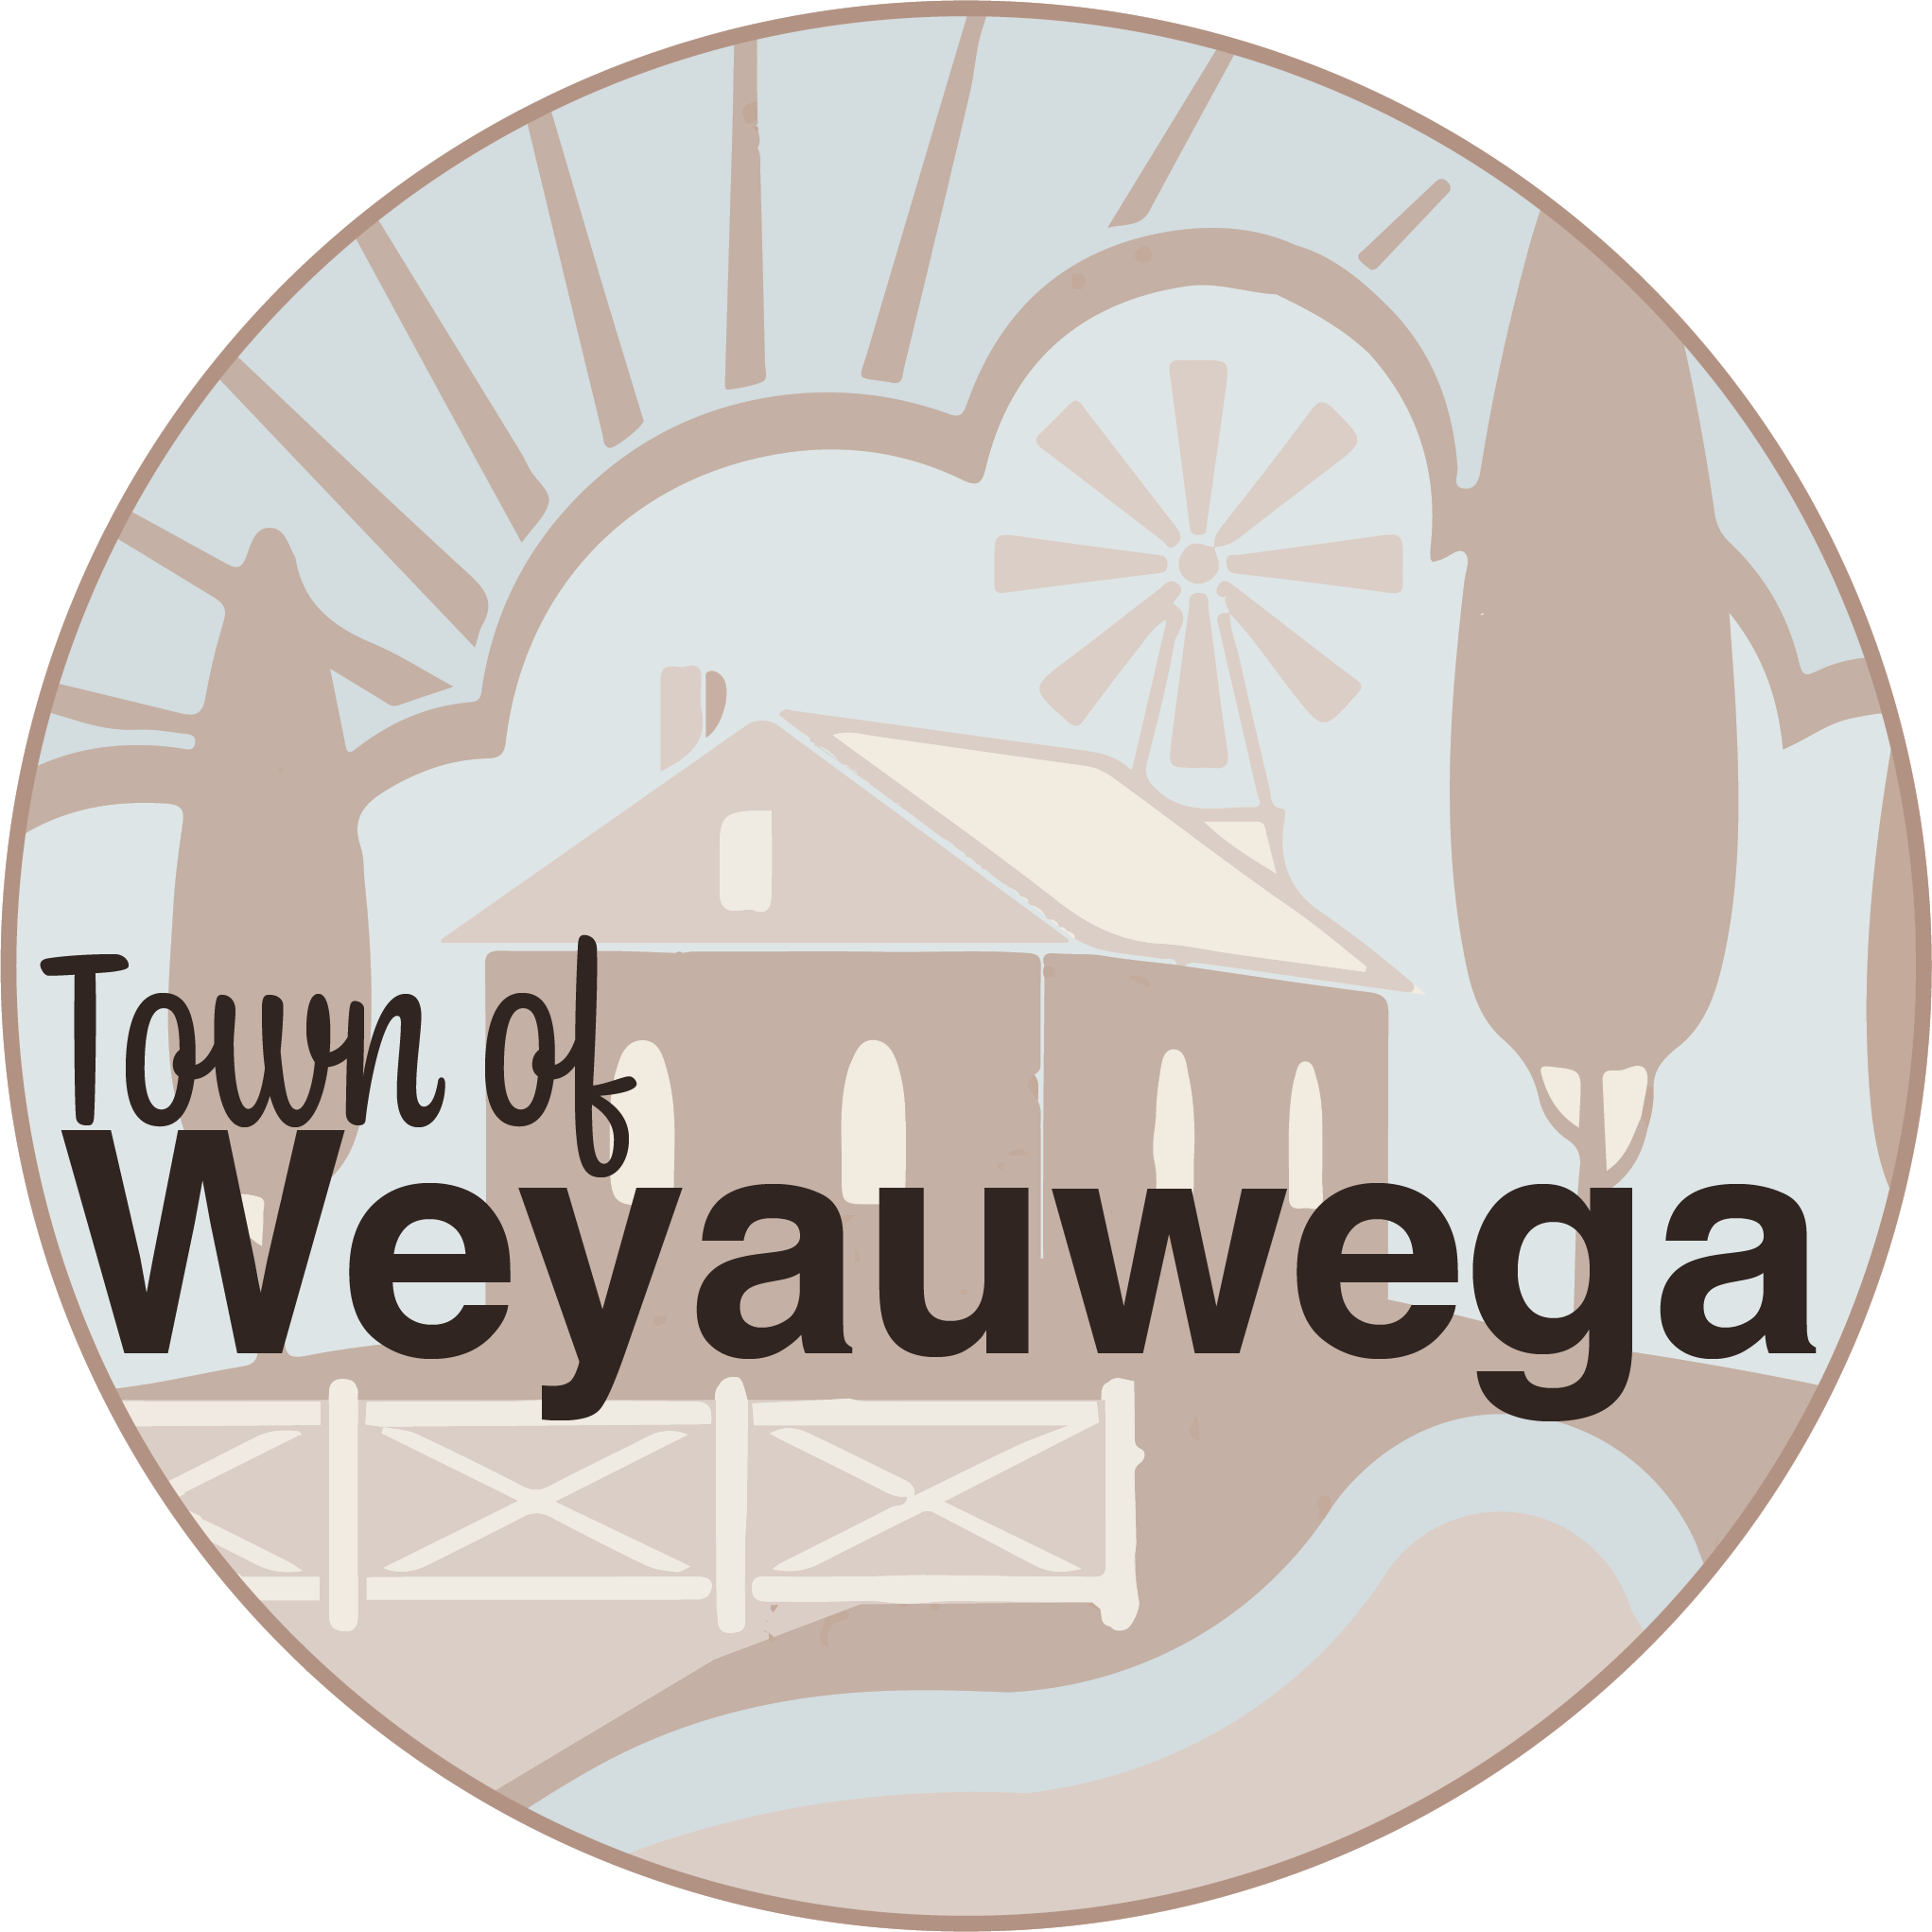 Town of Weyauwega